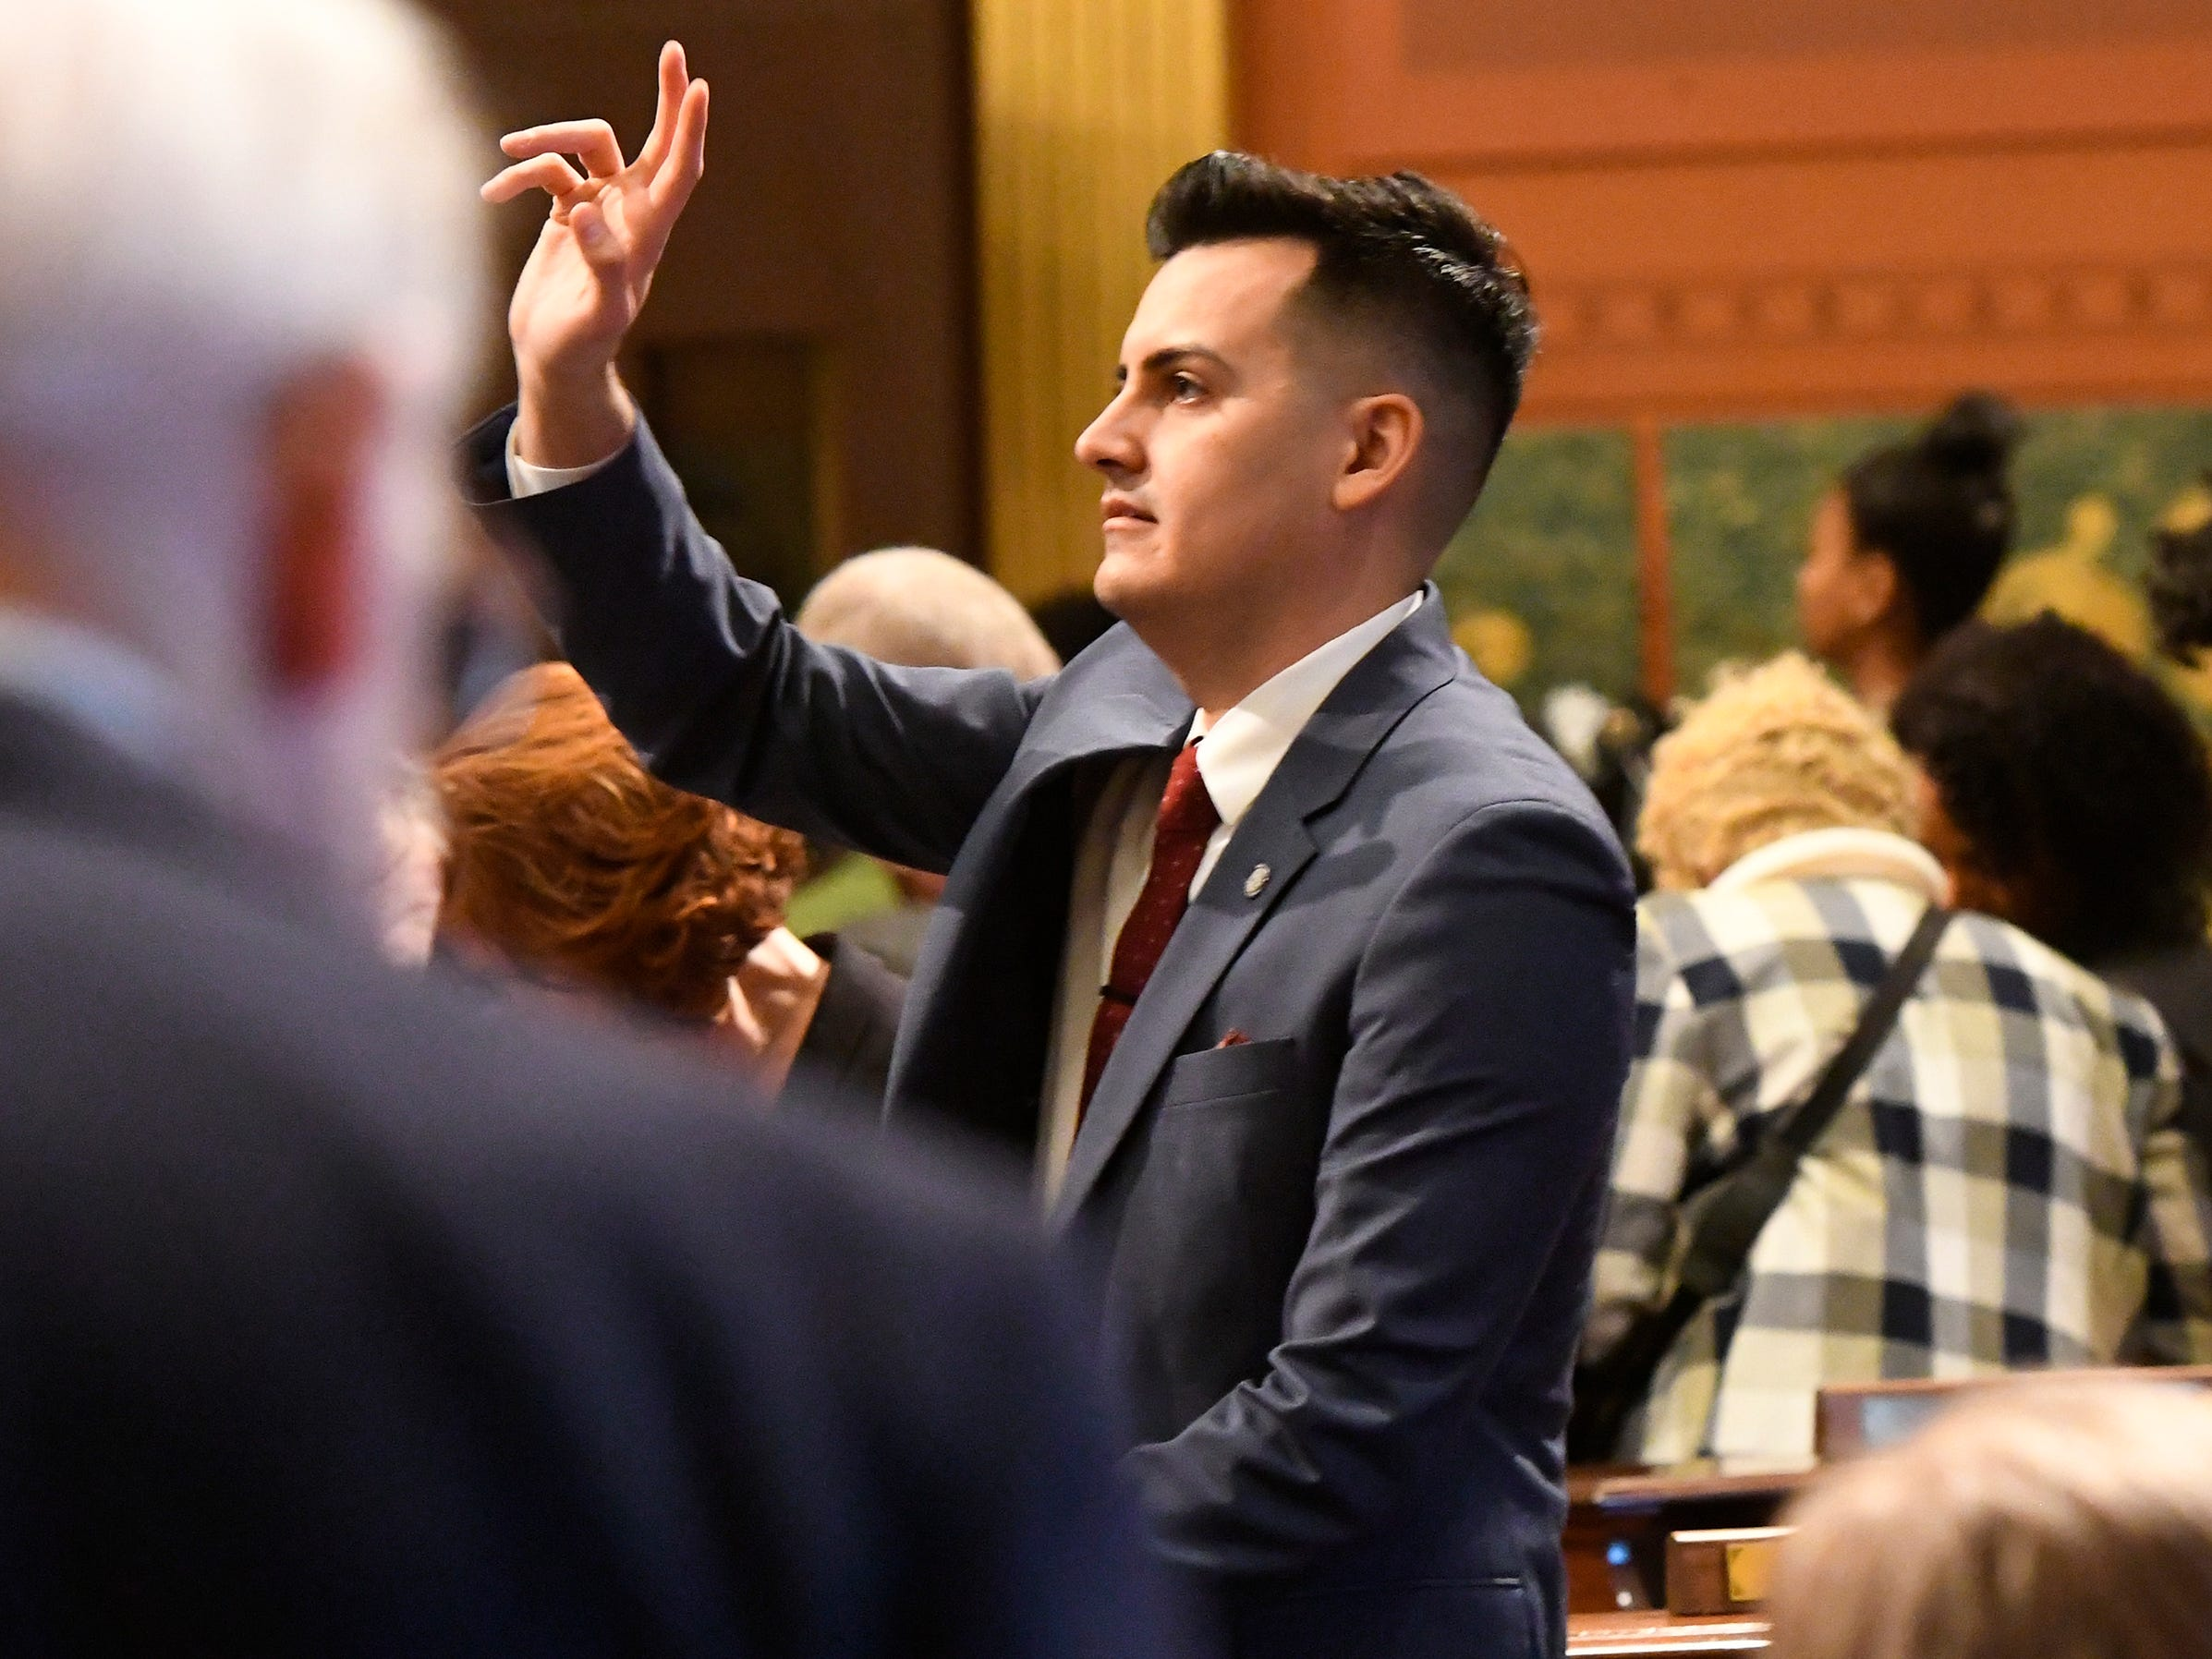 Rep. Darrin Camilleri, D-Brownston, waves to spectators from the floor.